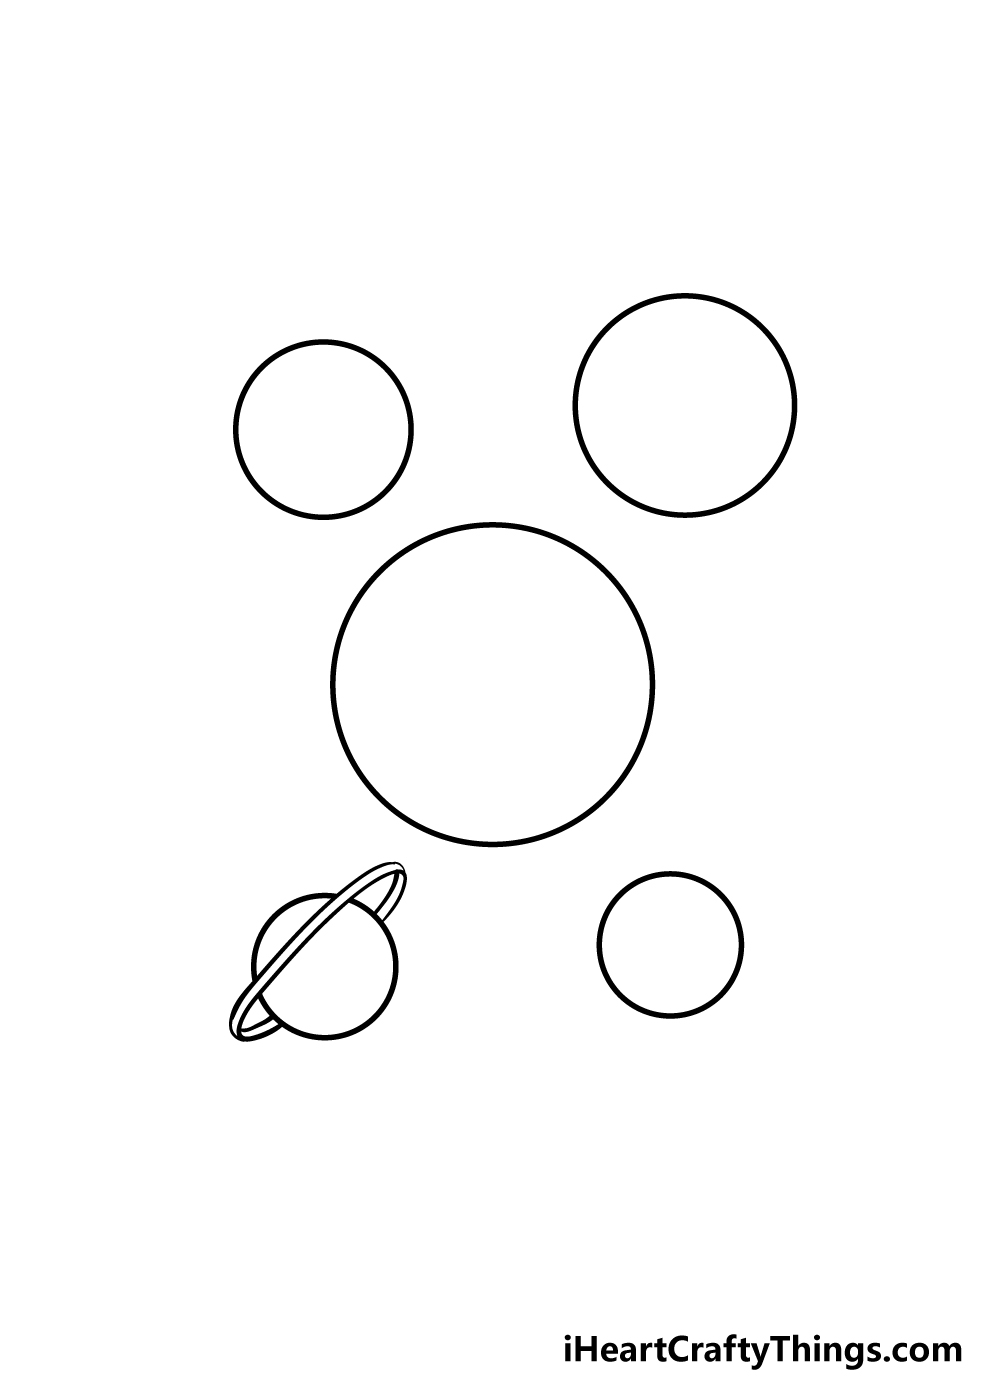 planets drawing step 3